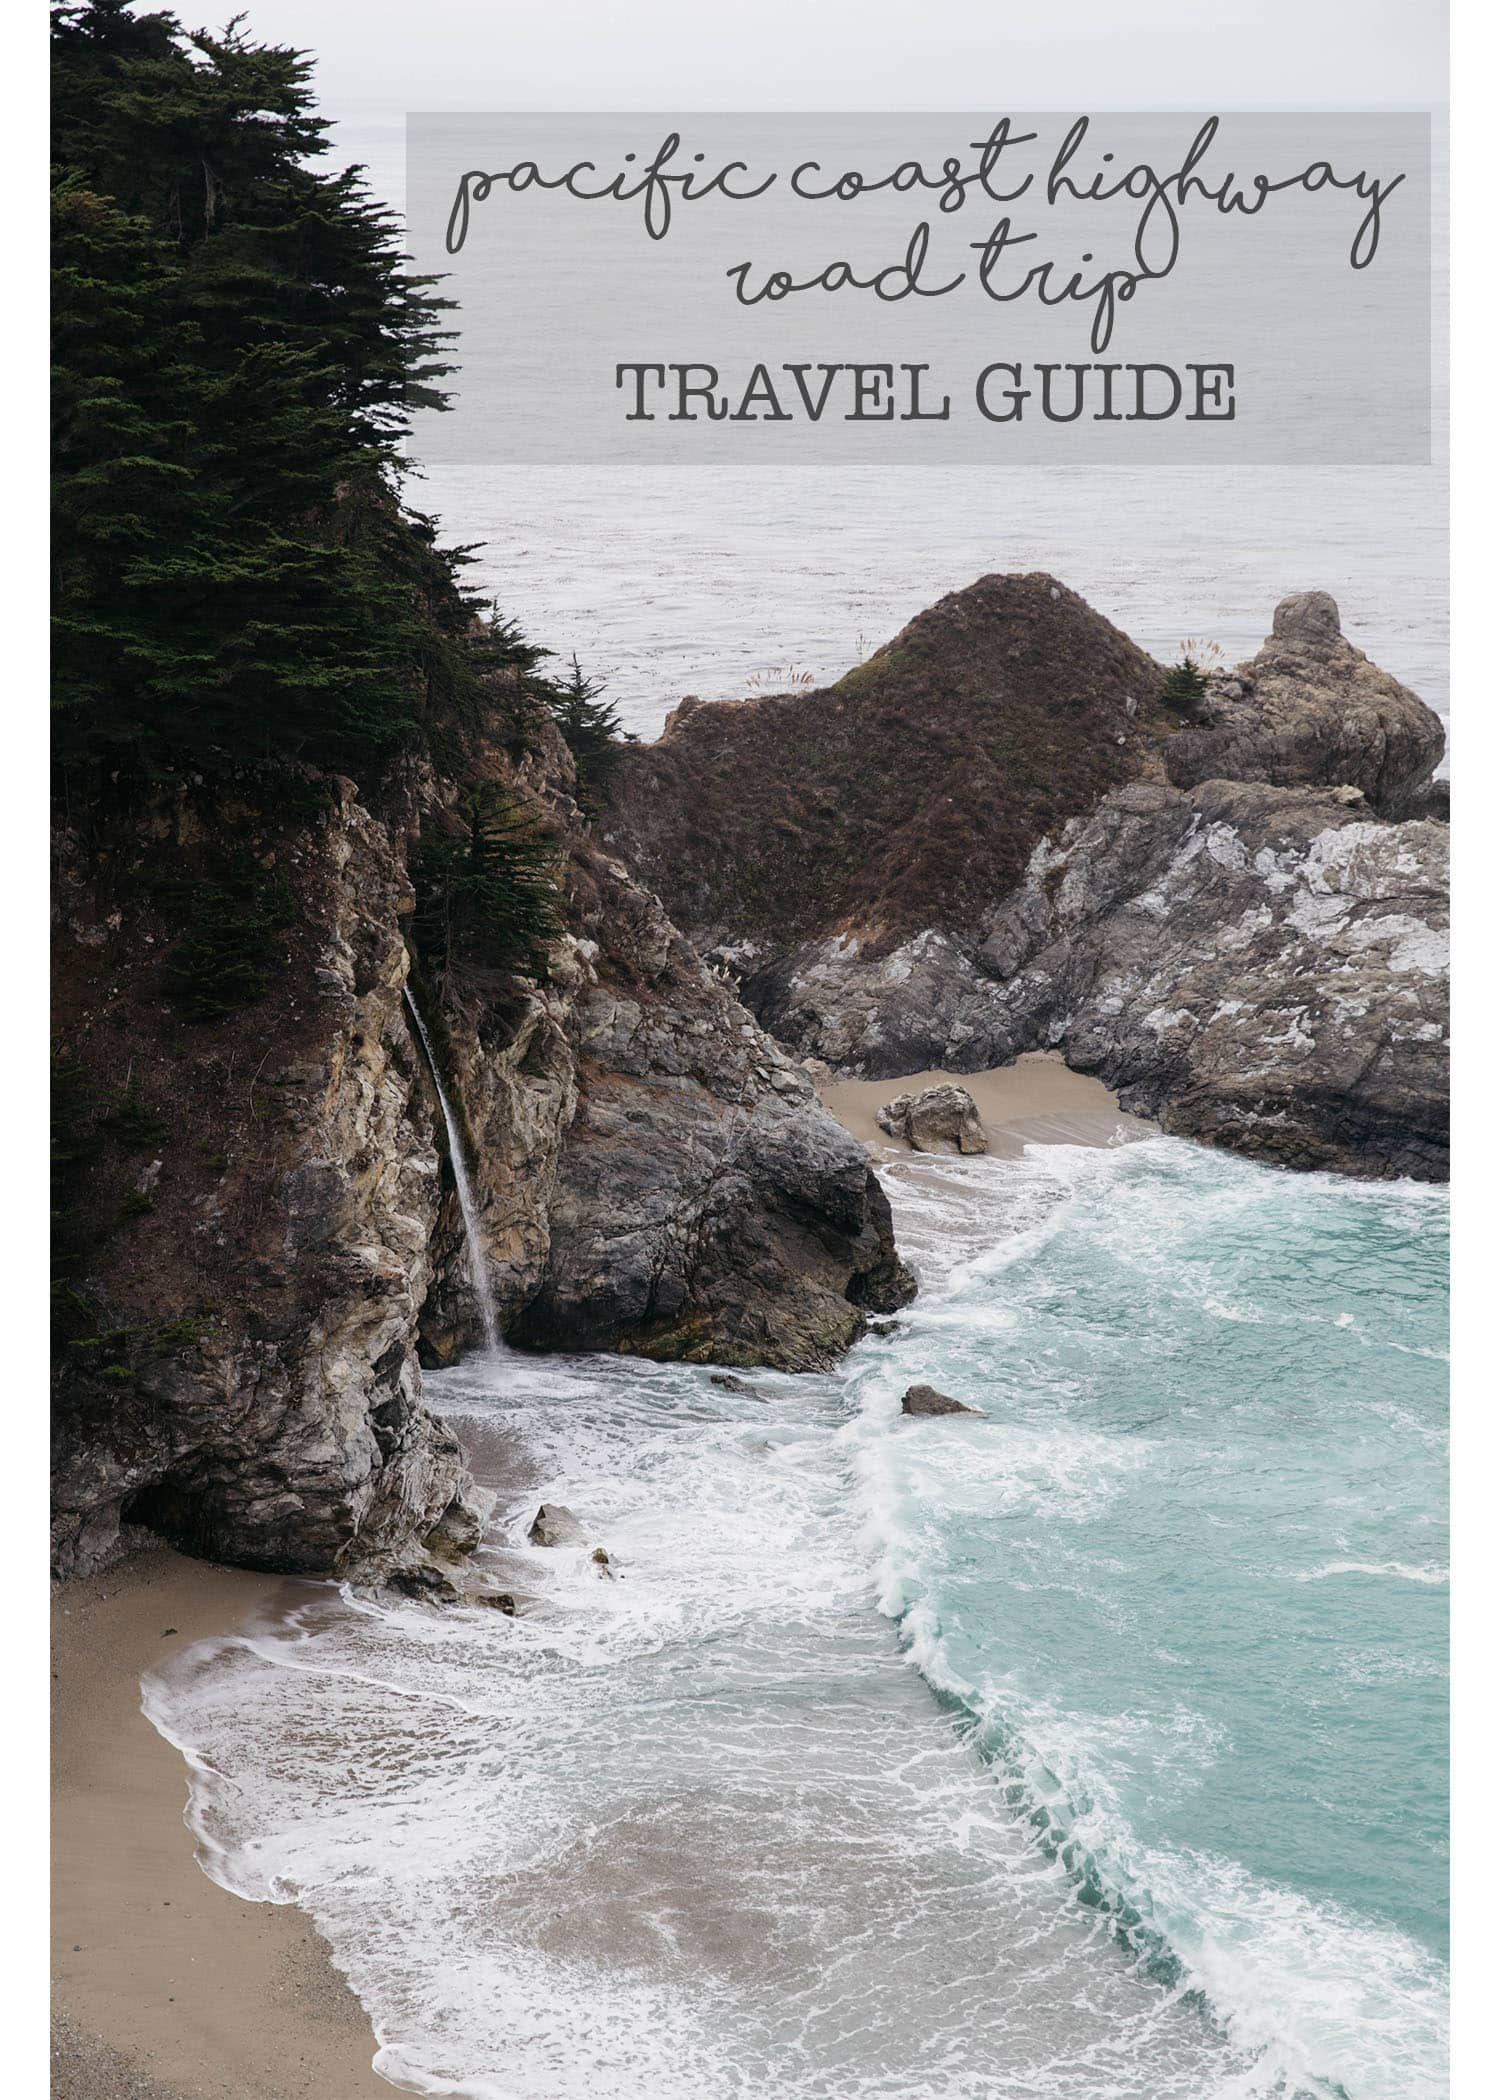 PACIFIC COAST HIGHWAY TRAVEL GUIDE